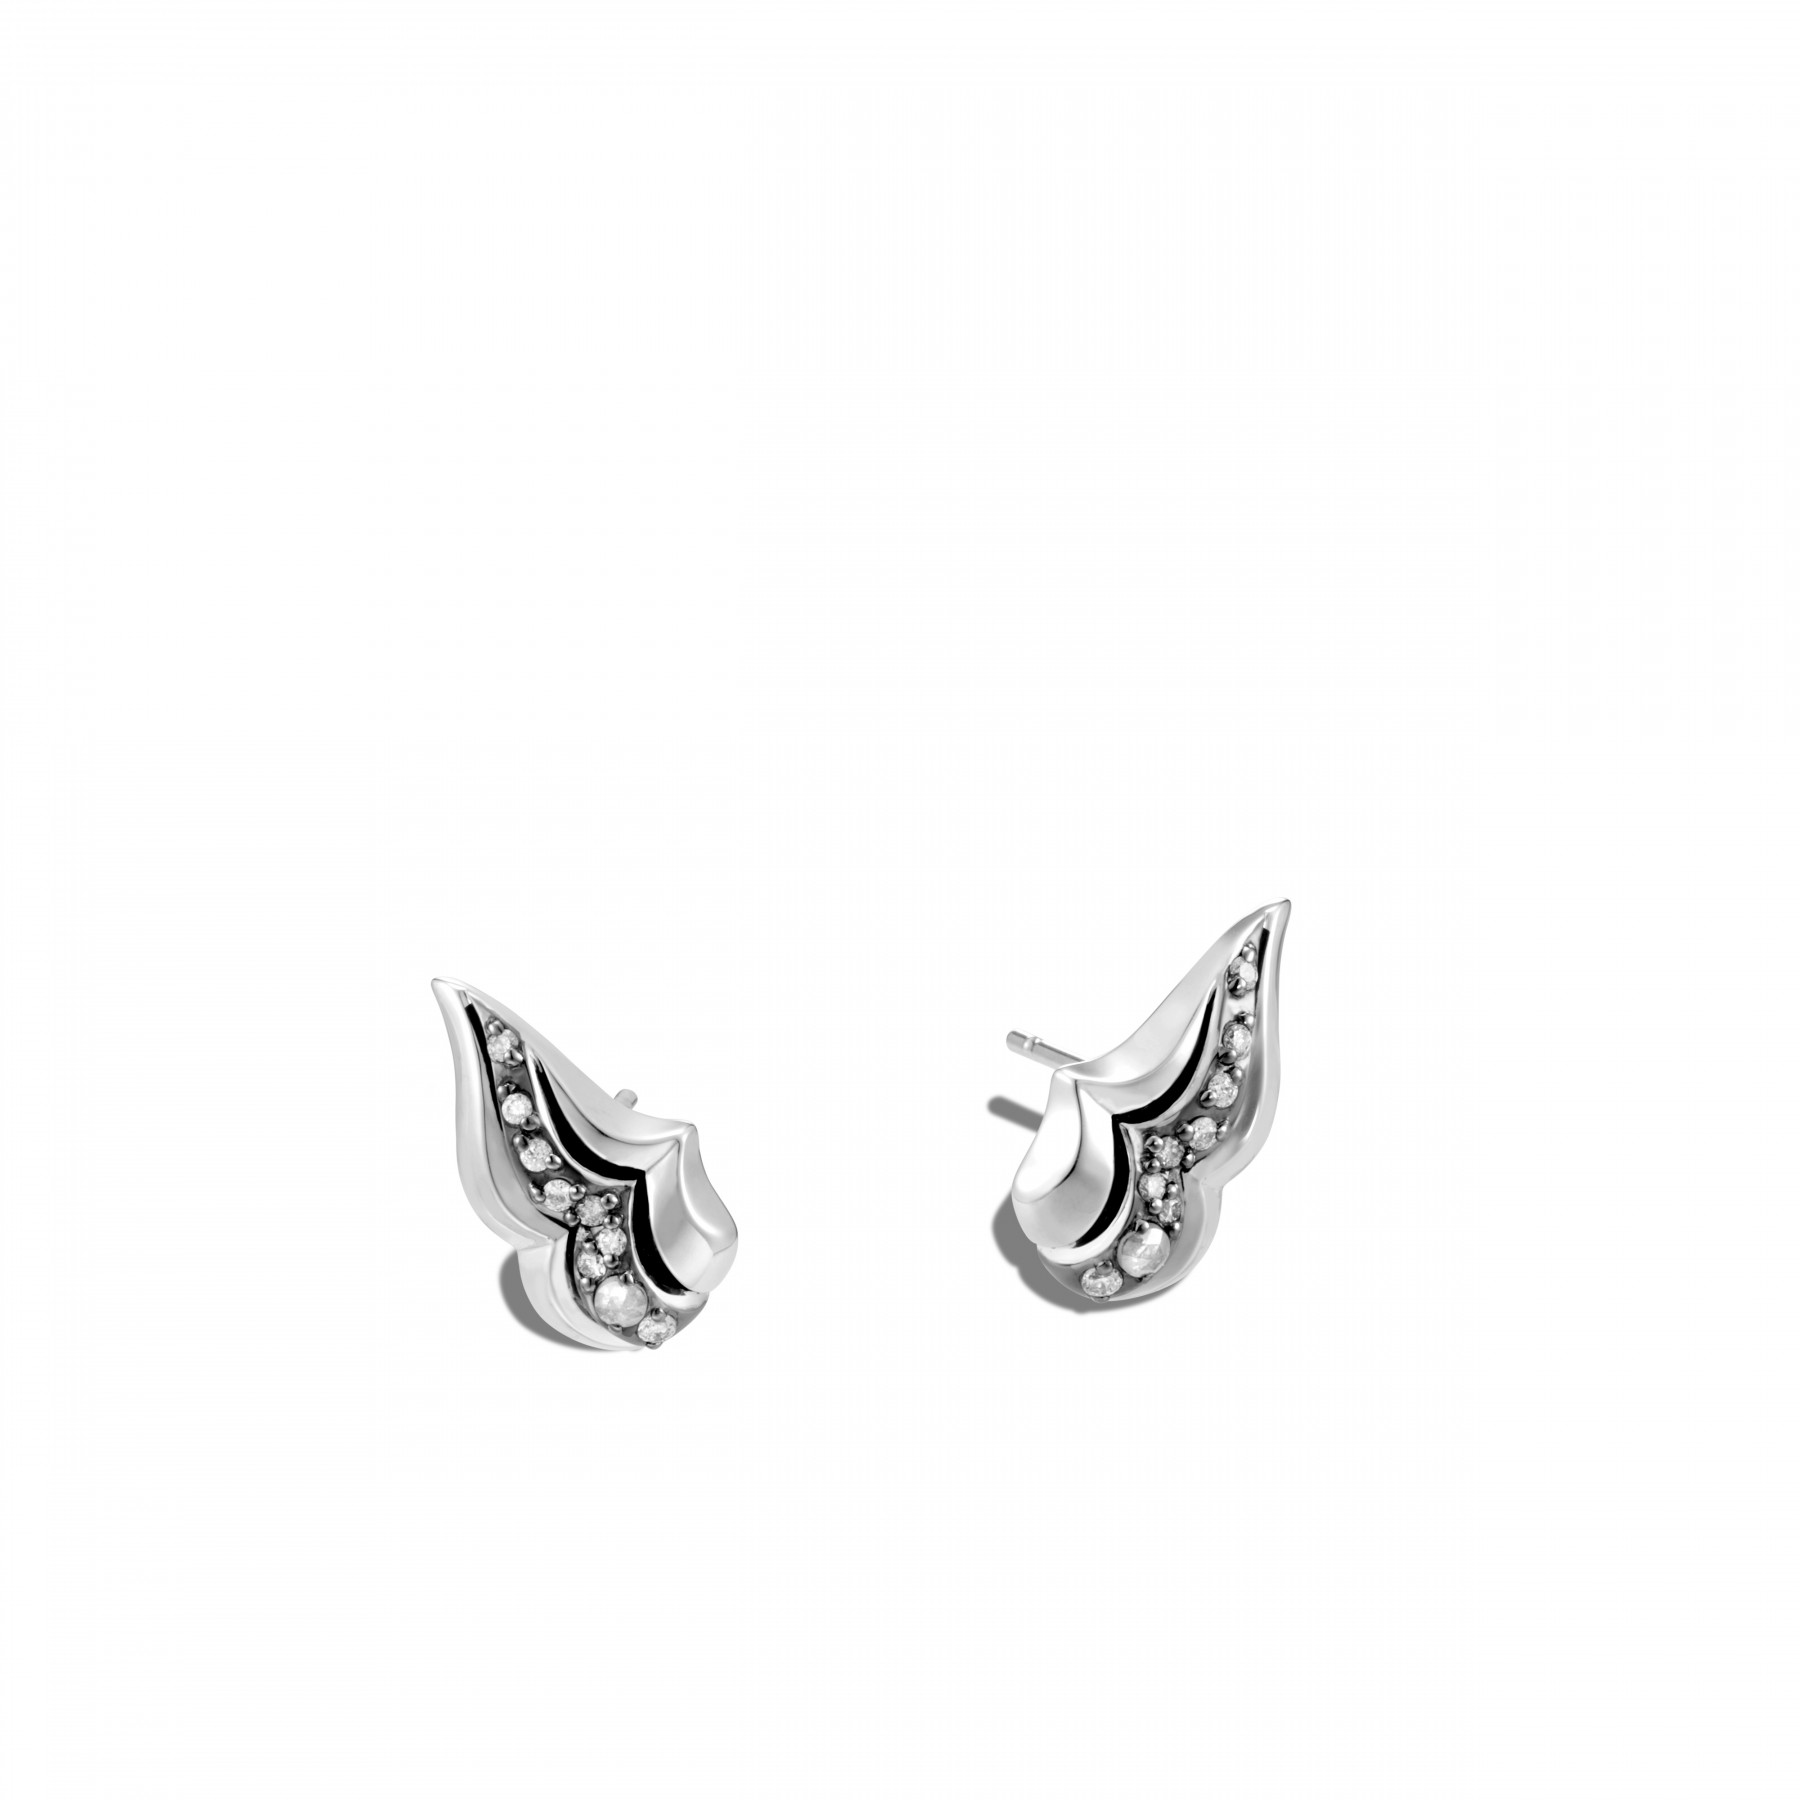 John Hardy Lahar White and Grey Diamond Wing Studs front view